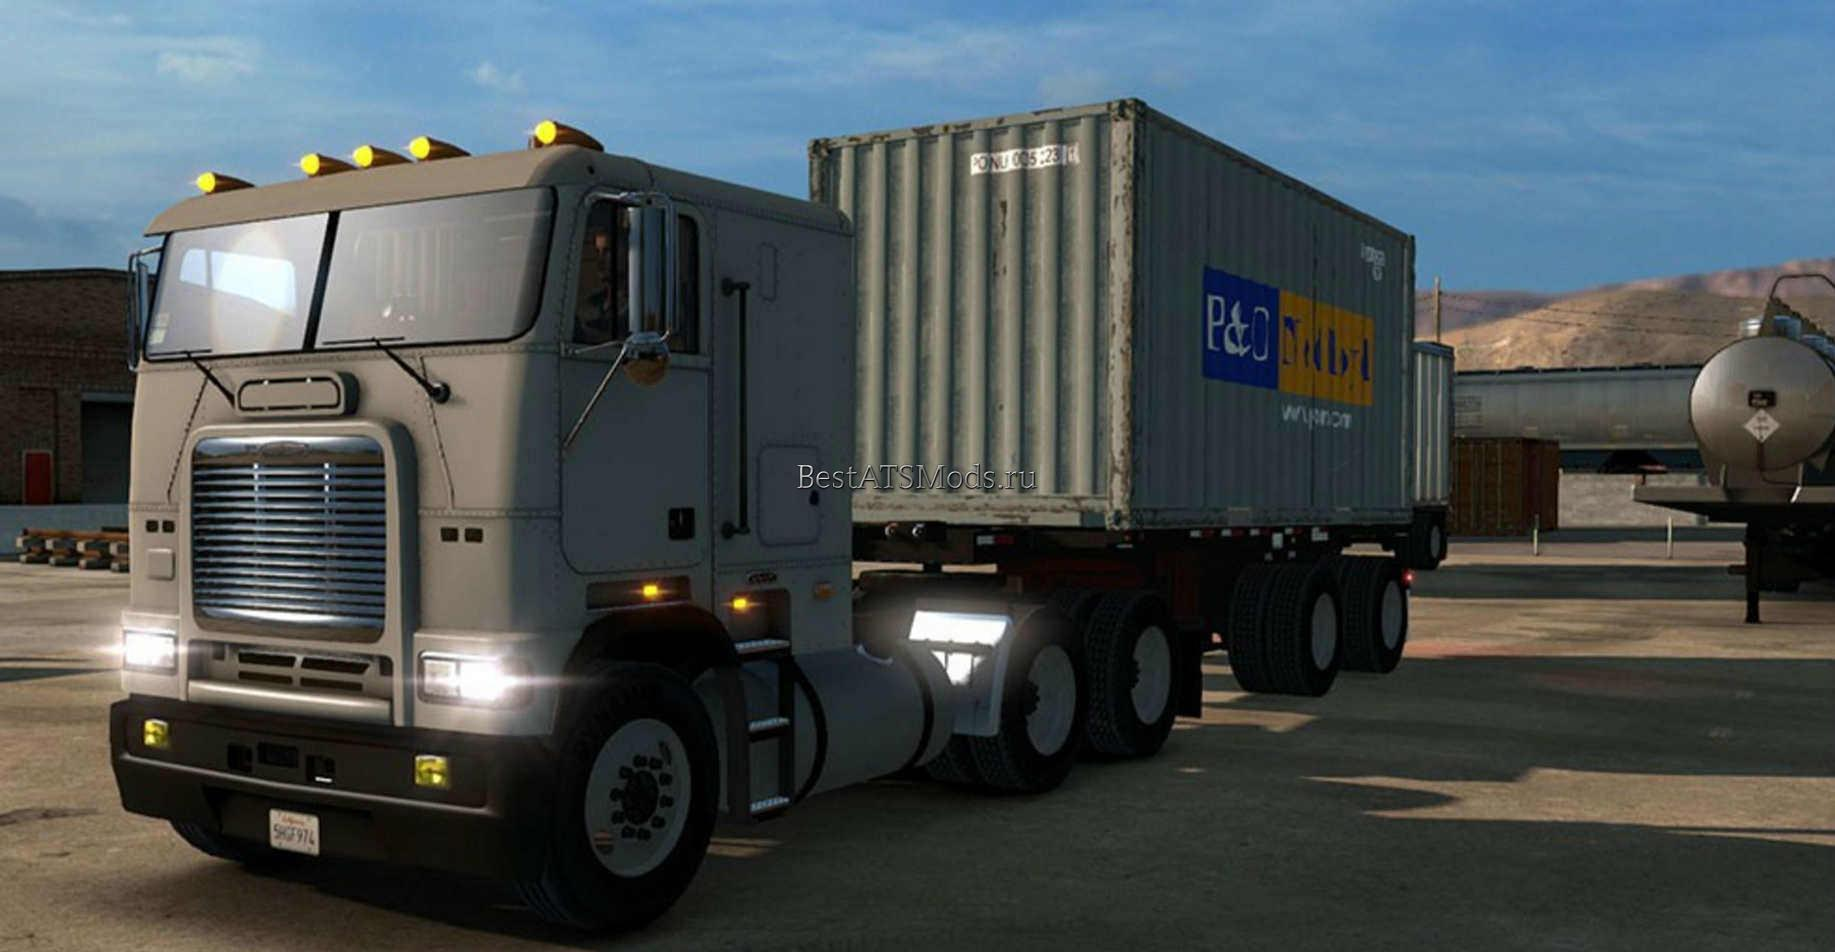 rsz_Мод_прицеп_container_20ft_2_axles_trailer_american_truck_simulator